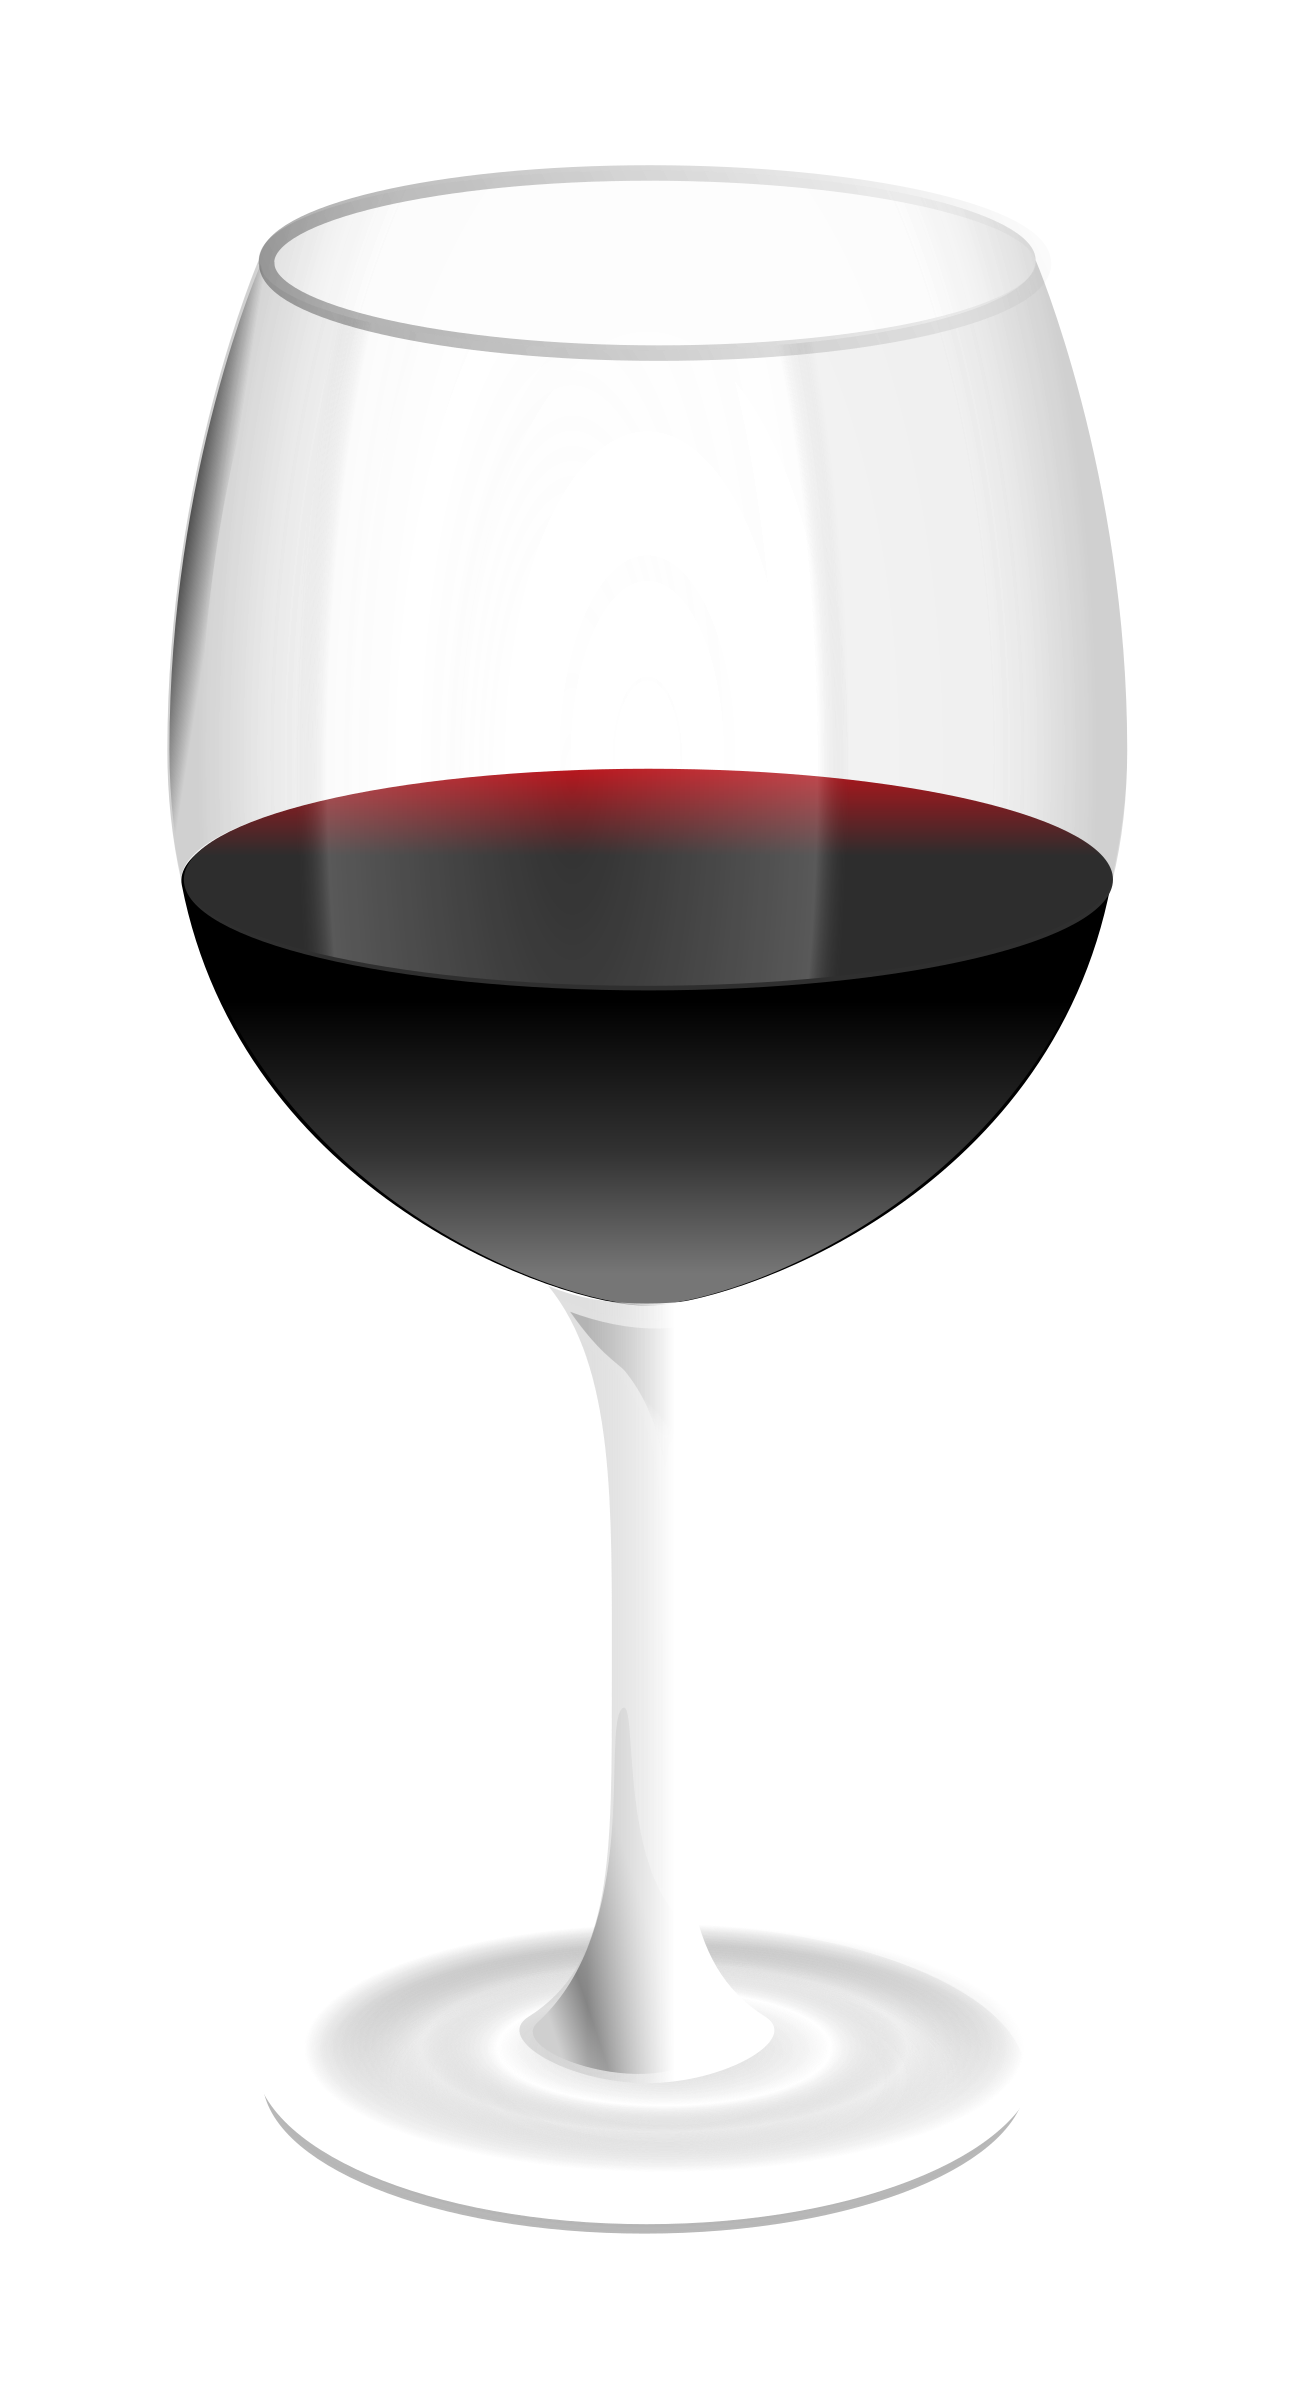 BIG IMAGE (PNG) - PNG Glass Of Wine